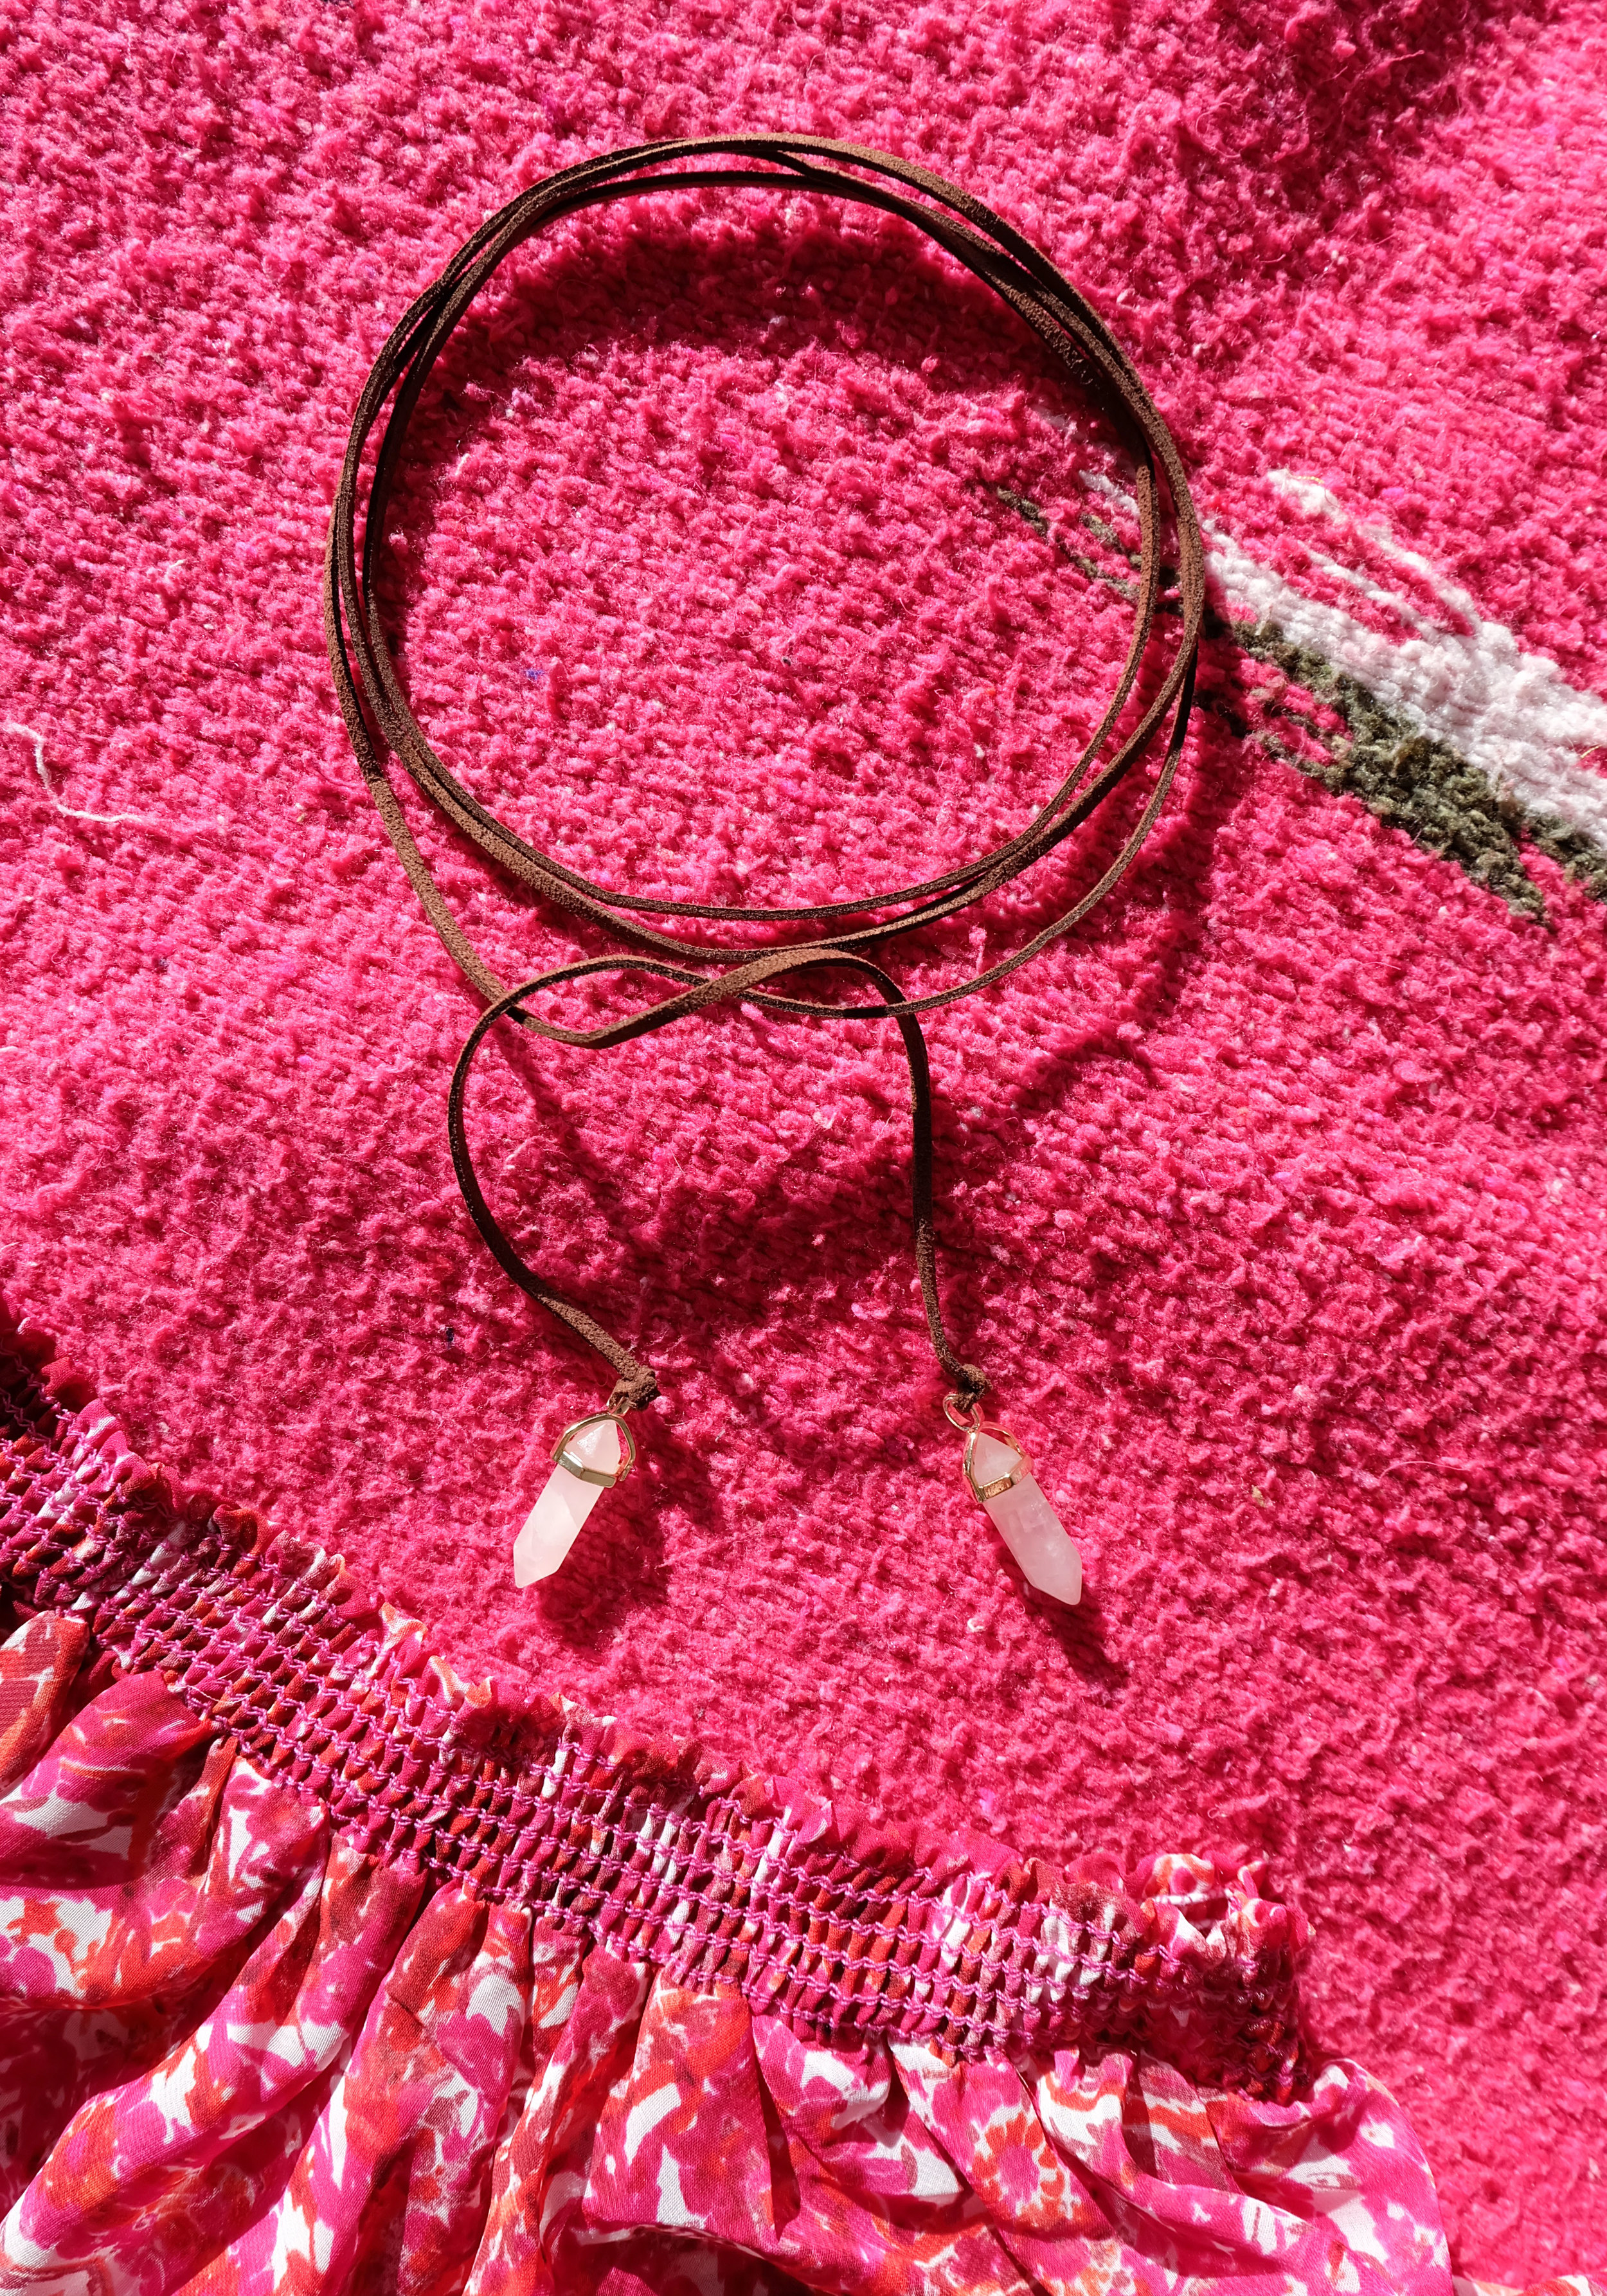 DIY Suede Wrap Choker Necklace With Rose Quartz Crystal Pendant Embellishments, Music Festival Fashion, Summer Trends 2016